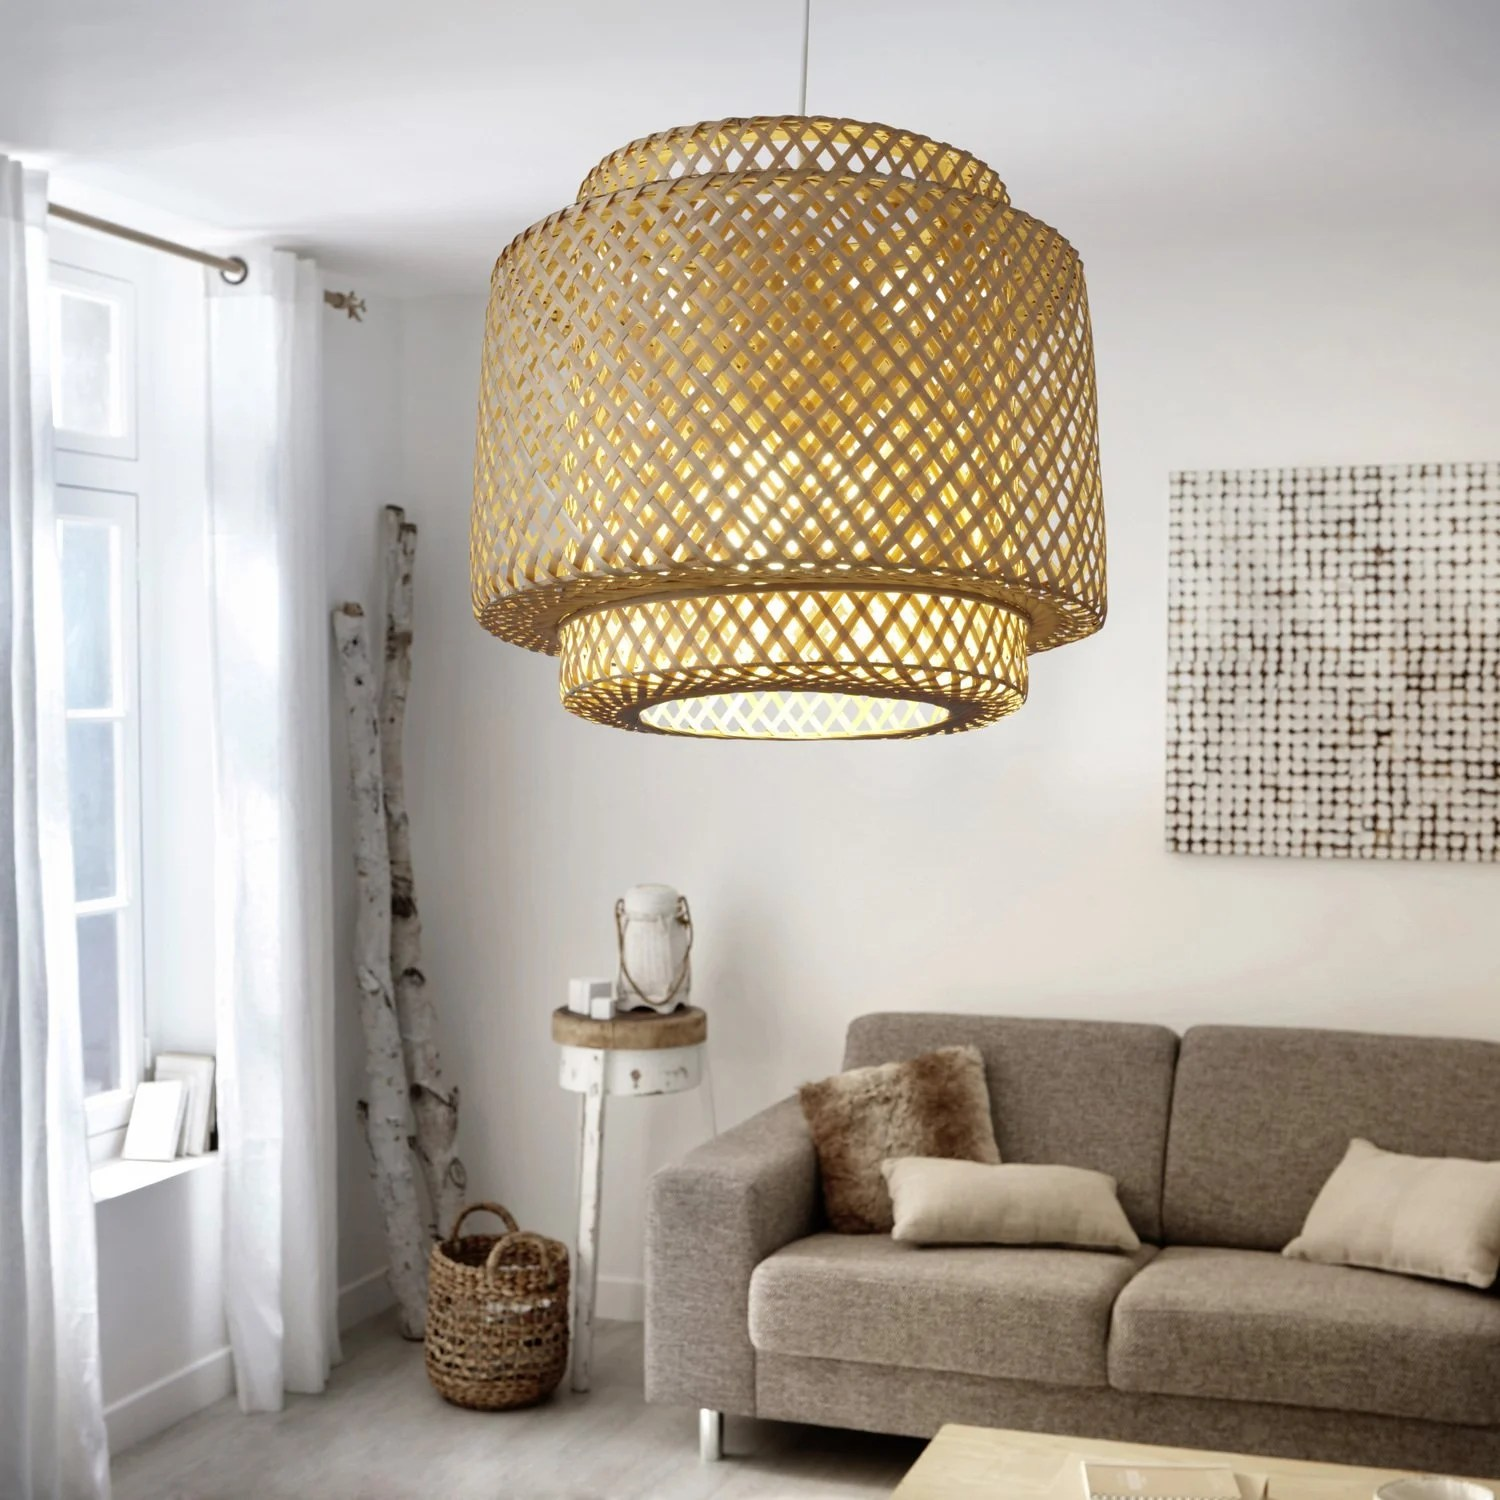 Suspension Bambou Leroy Merlin Suspension Naturelle En Bambou Qui Affiche Un Look